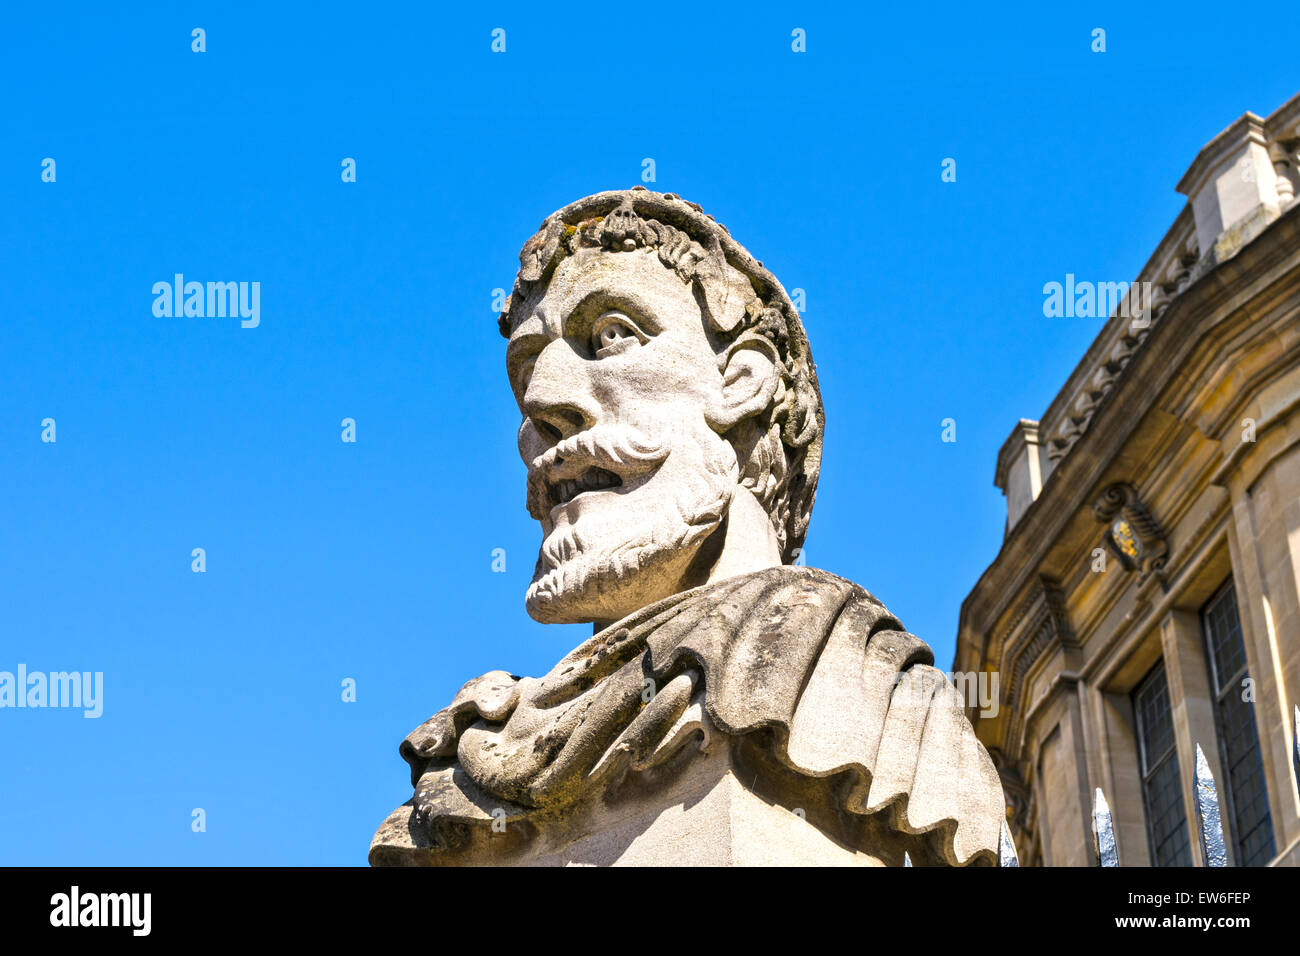 OXFORD CITY HEAD OF A ROMAN EMPEROR OR HERM OUTSIDE THE SHELDONIAN THEATRE Stock Photo